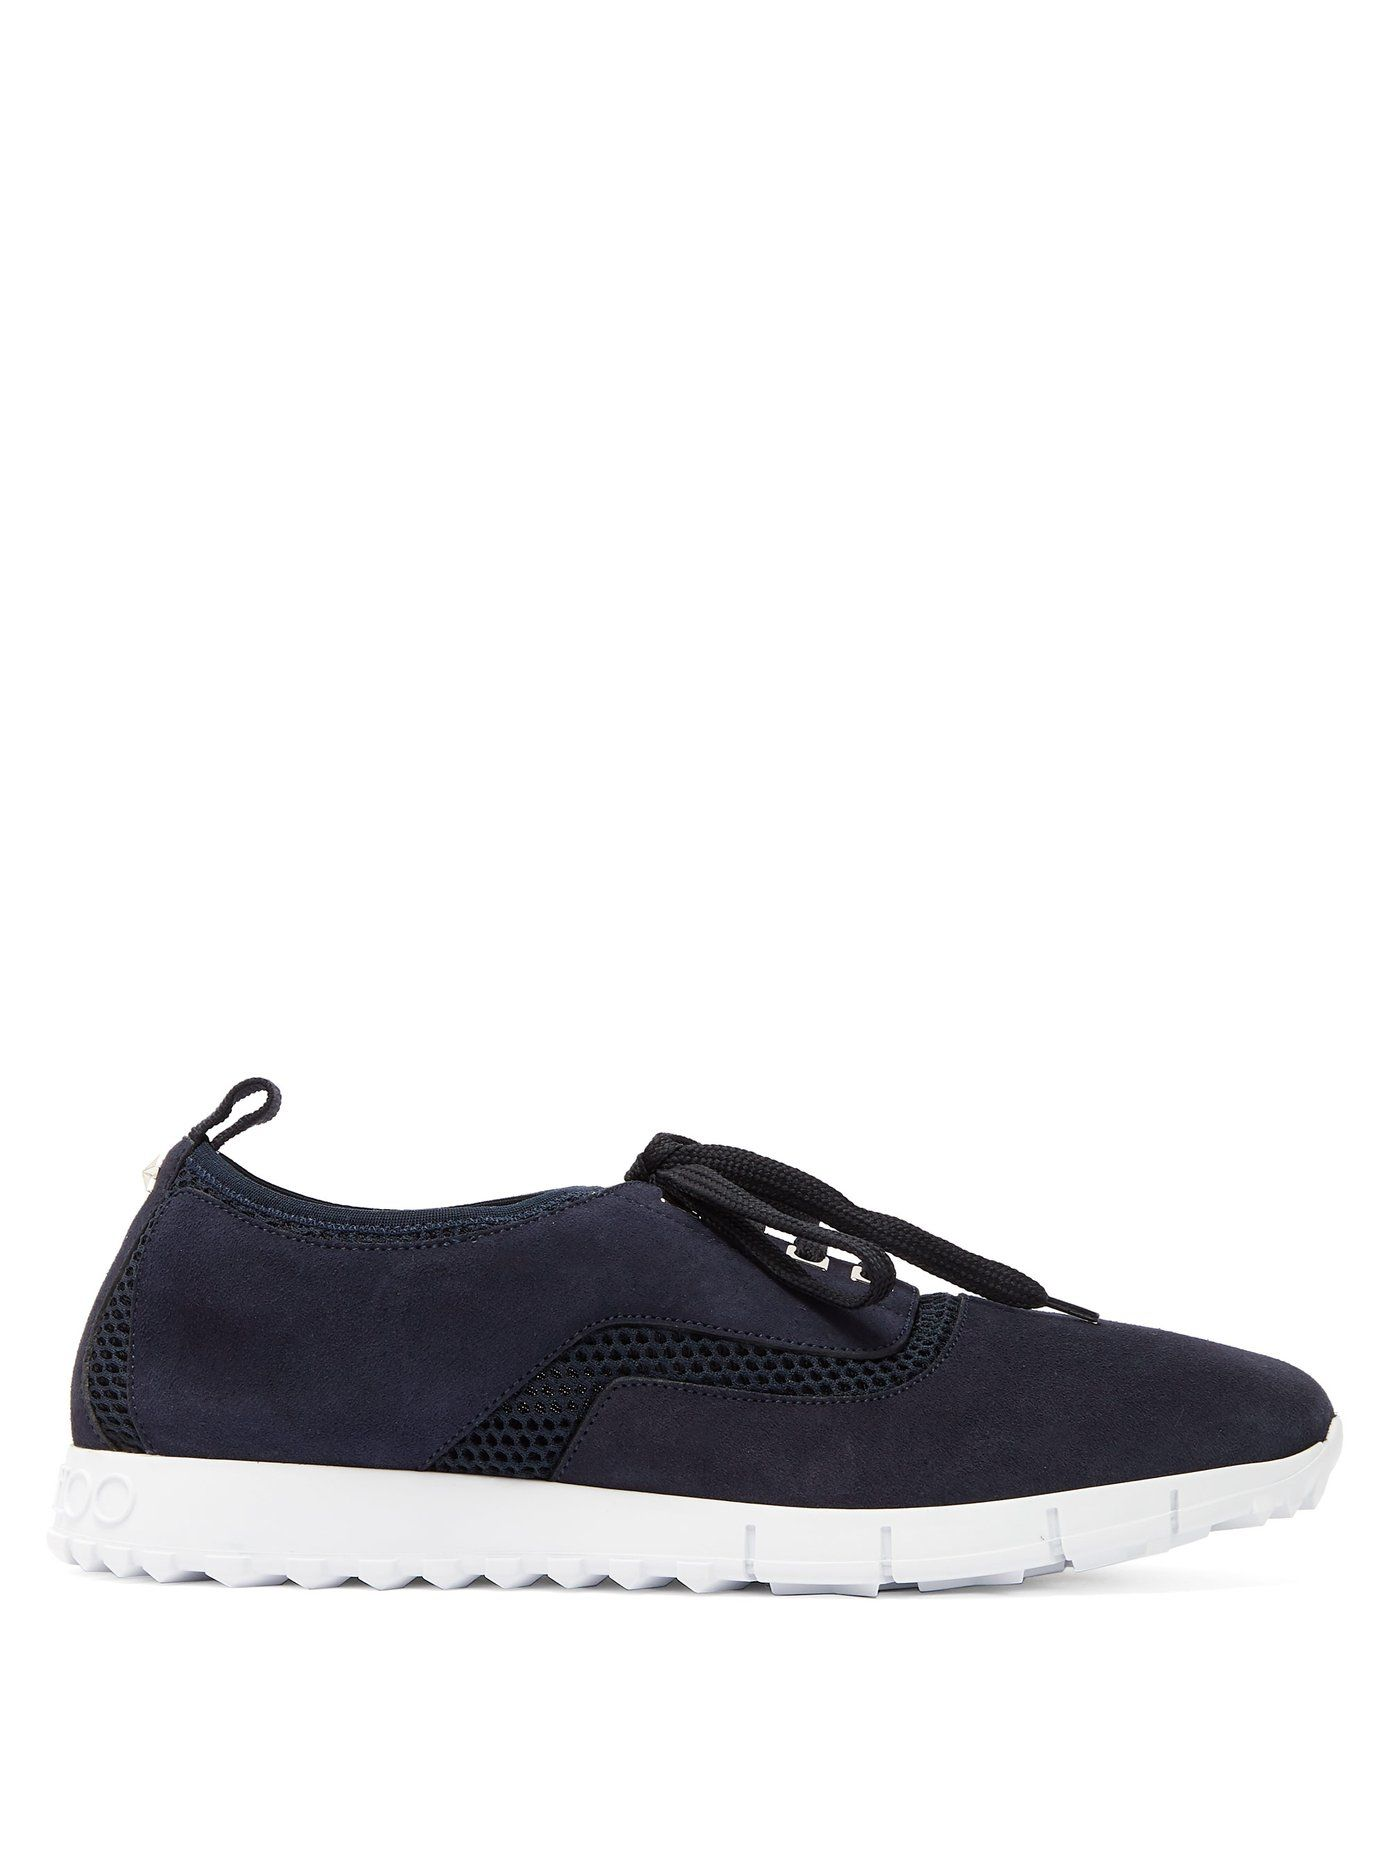 Jenson raised-sole low-top suede trainers Jimmy Choo London Buy Cheap Pay With Visa D3eif